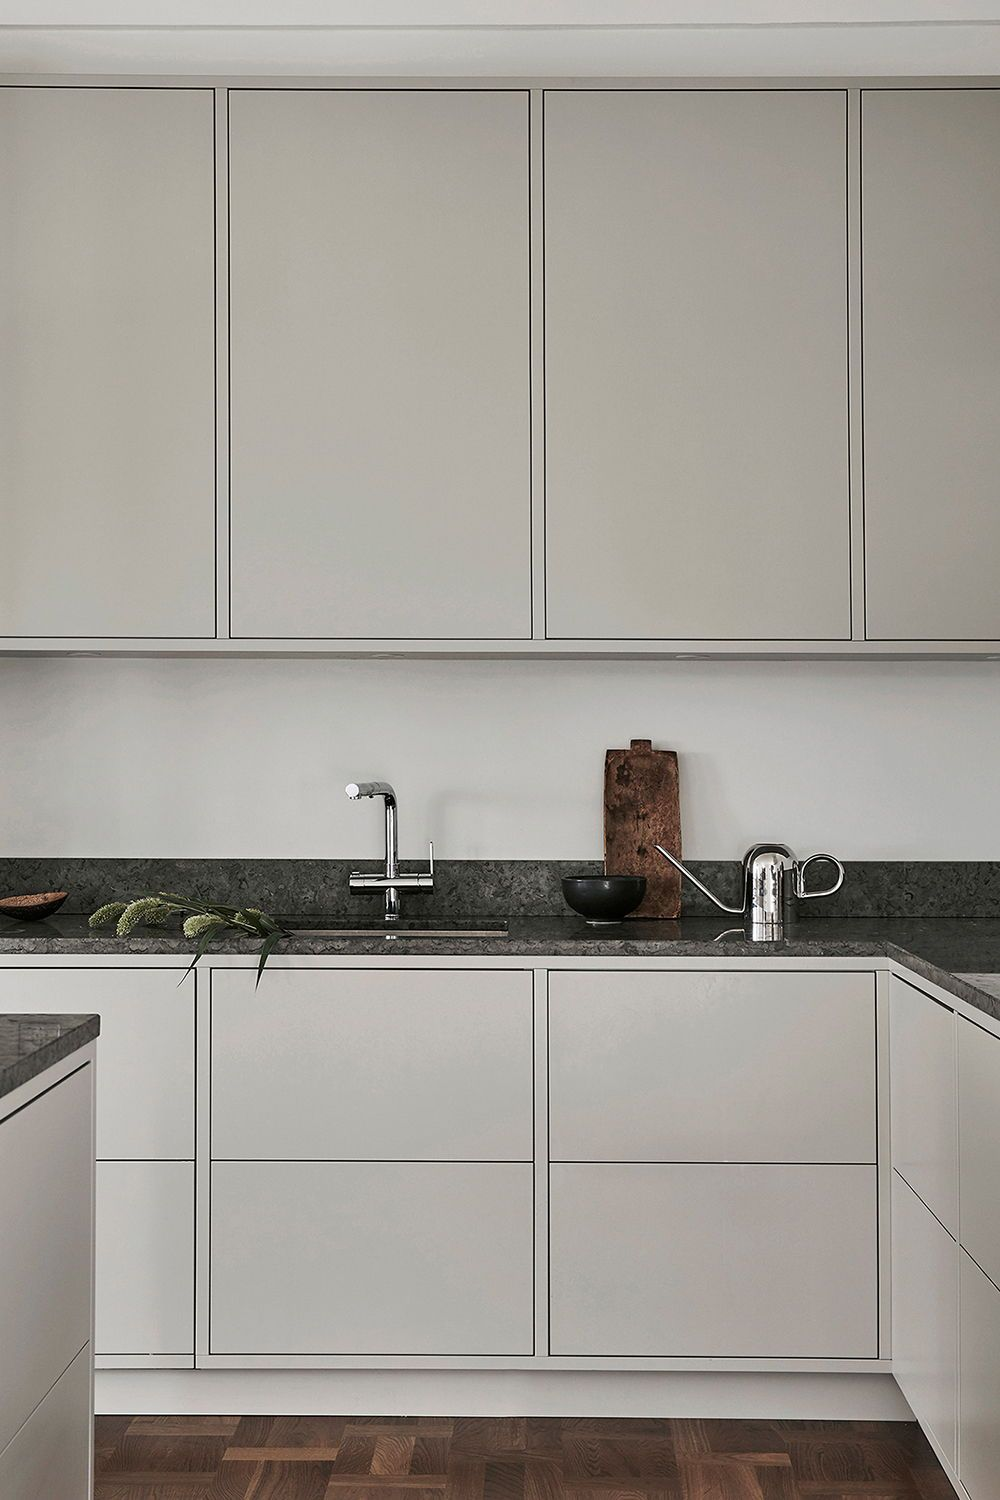 One Of Our Light Grey Minimalist Kitchens A Modern Yet Timeless Design In This Scandinavian H Minimalist Kitchen Design Beige Kitchen Interior Design Kitchen